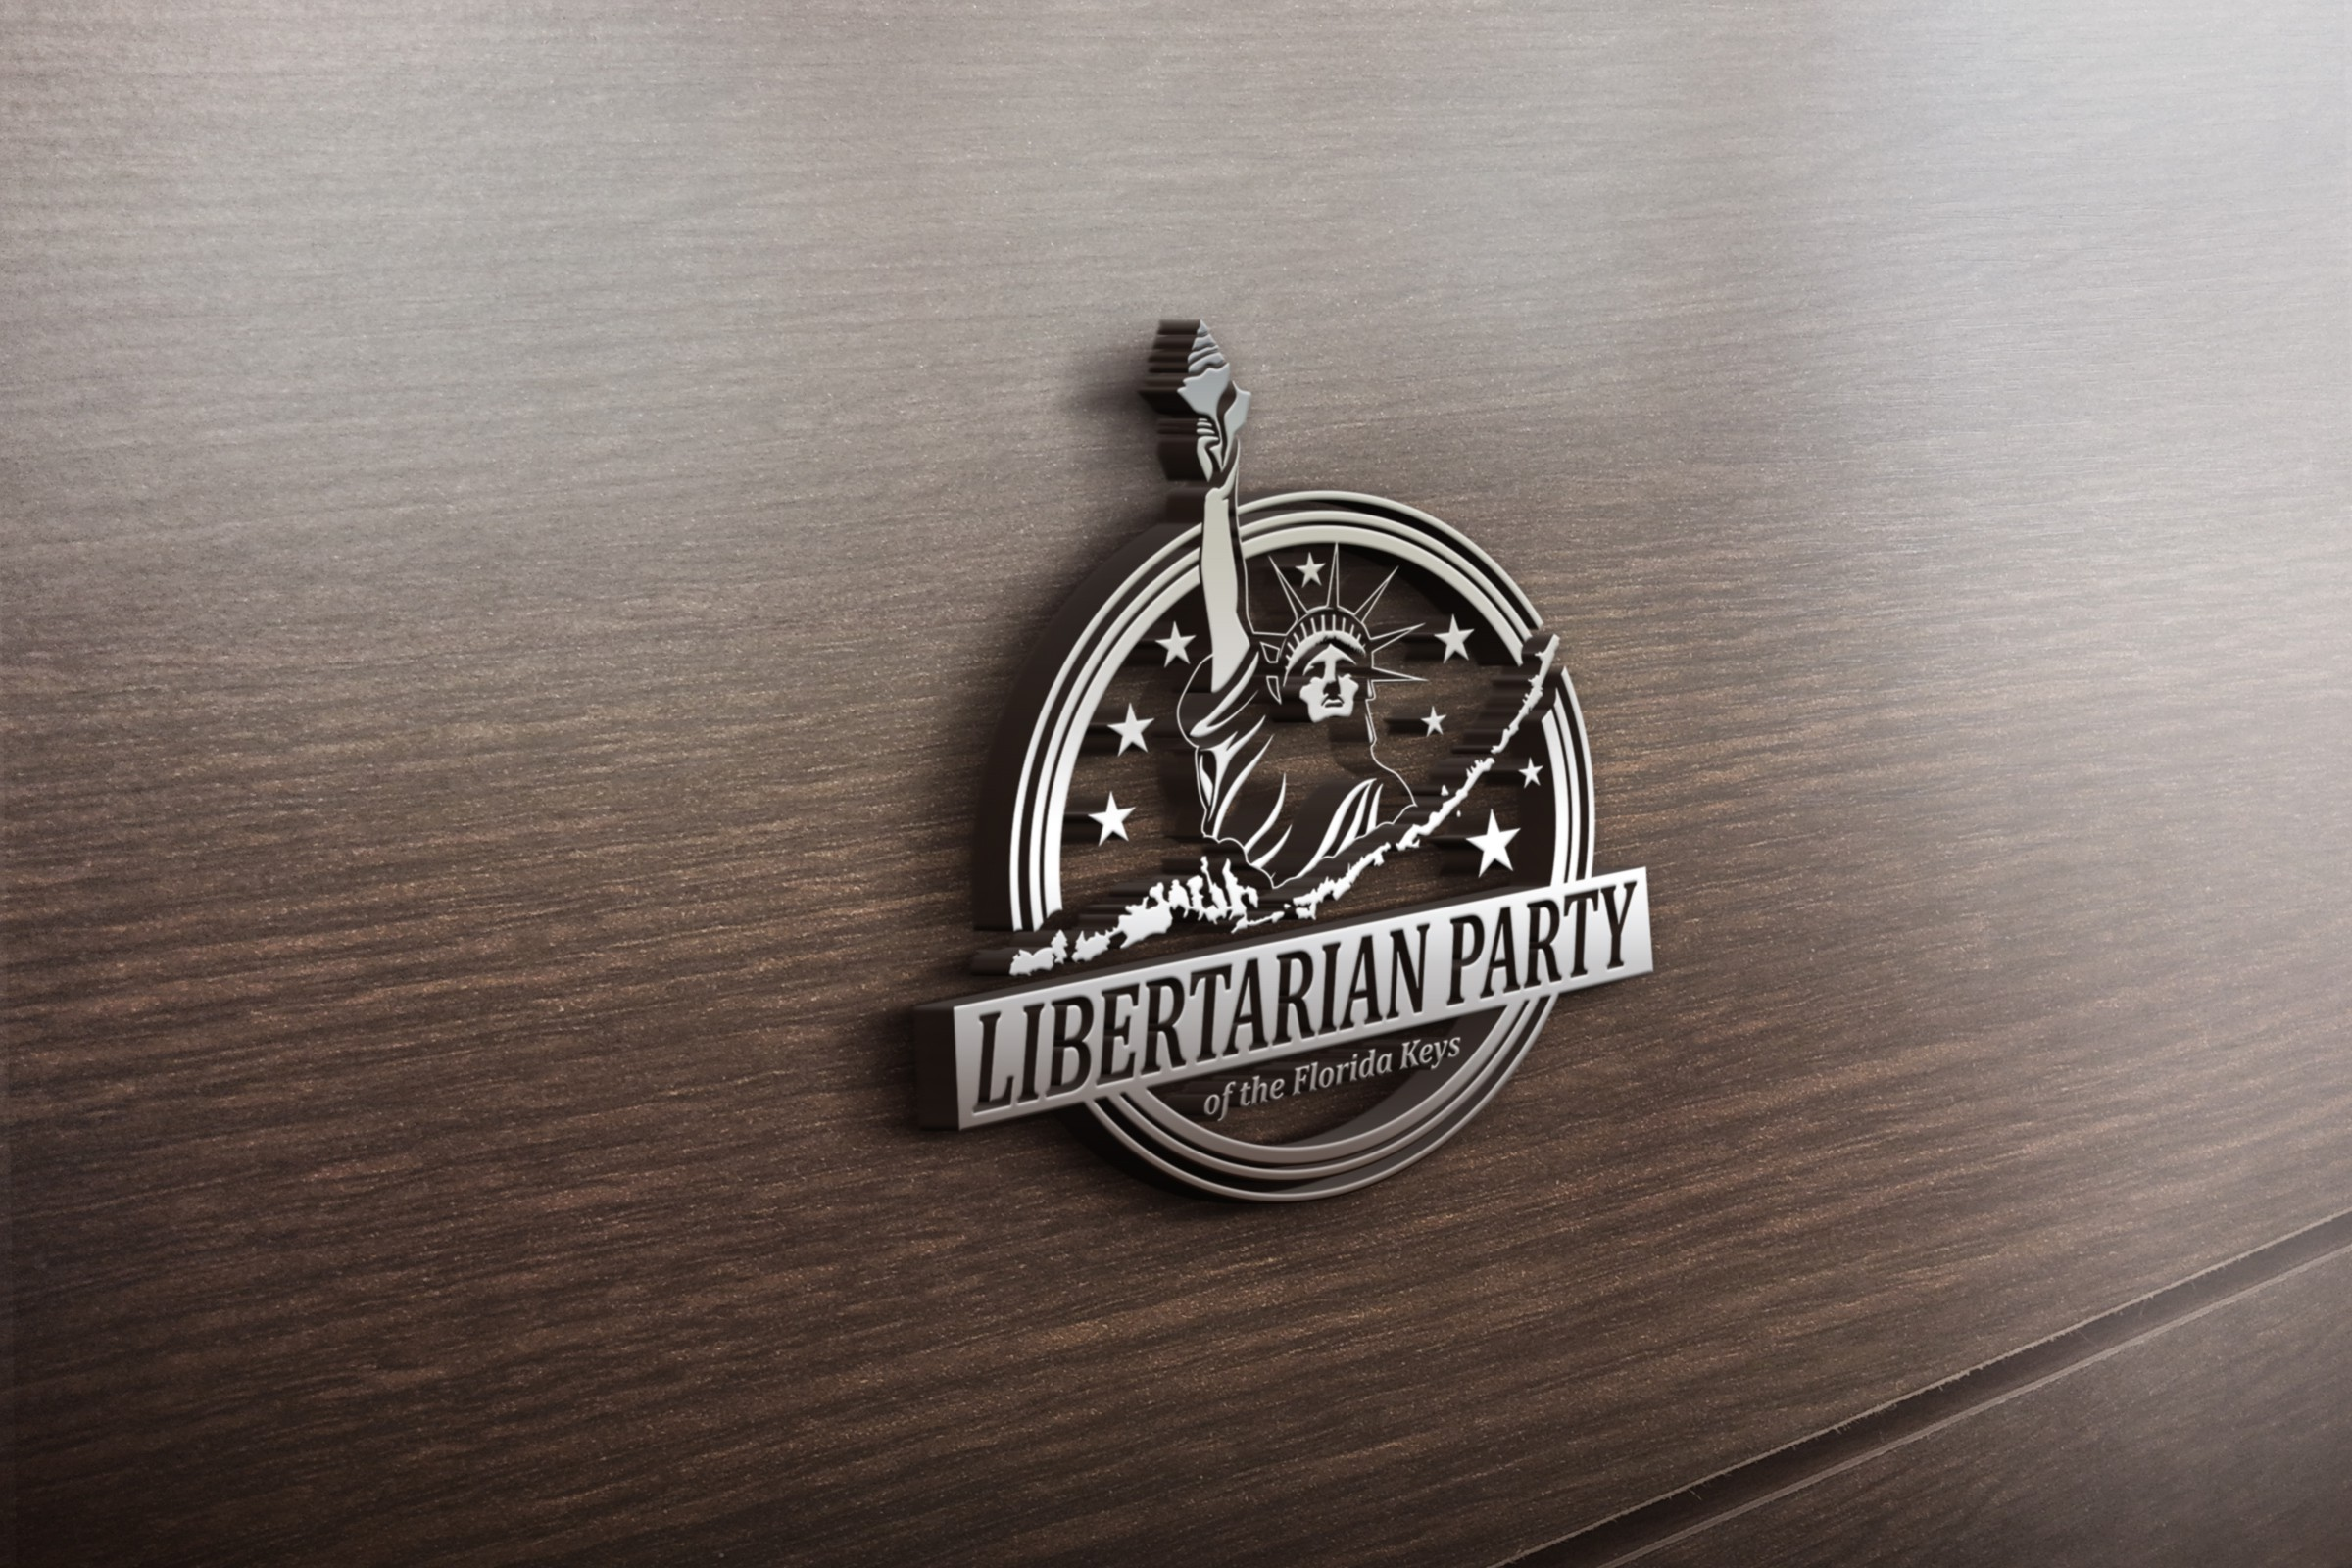 Create a logo for the Libertarian Party of Monroe County